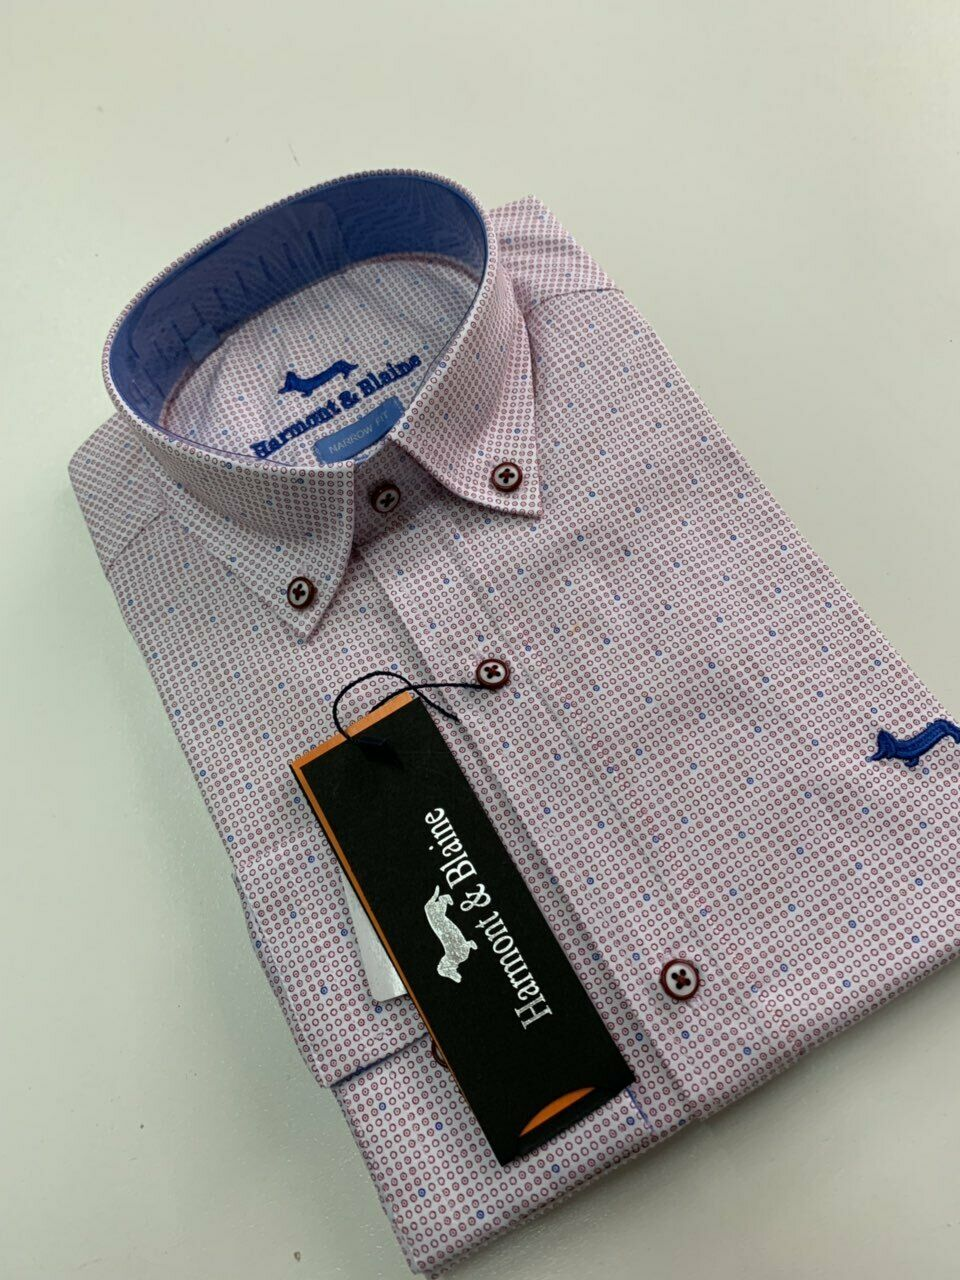 New Men Harmont and Blaine Shirt Pink With White bluee Dots - Size XXXL